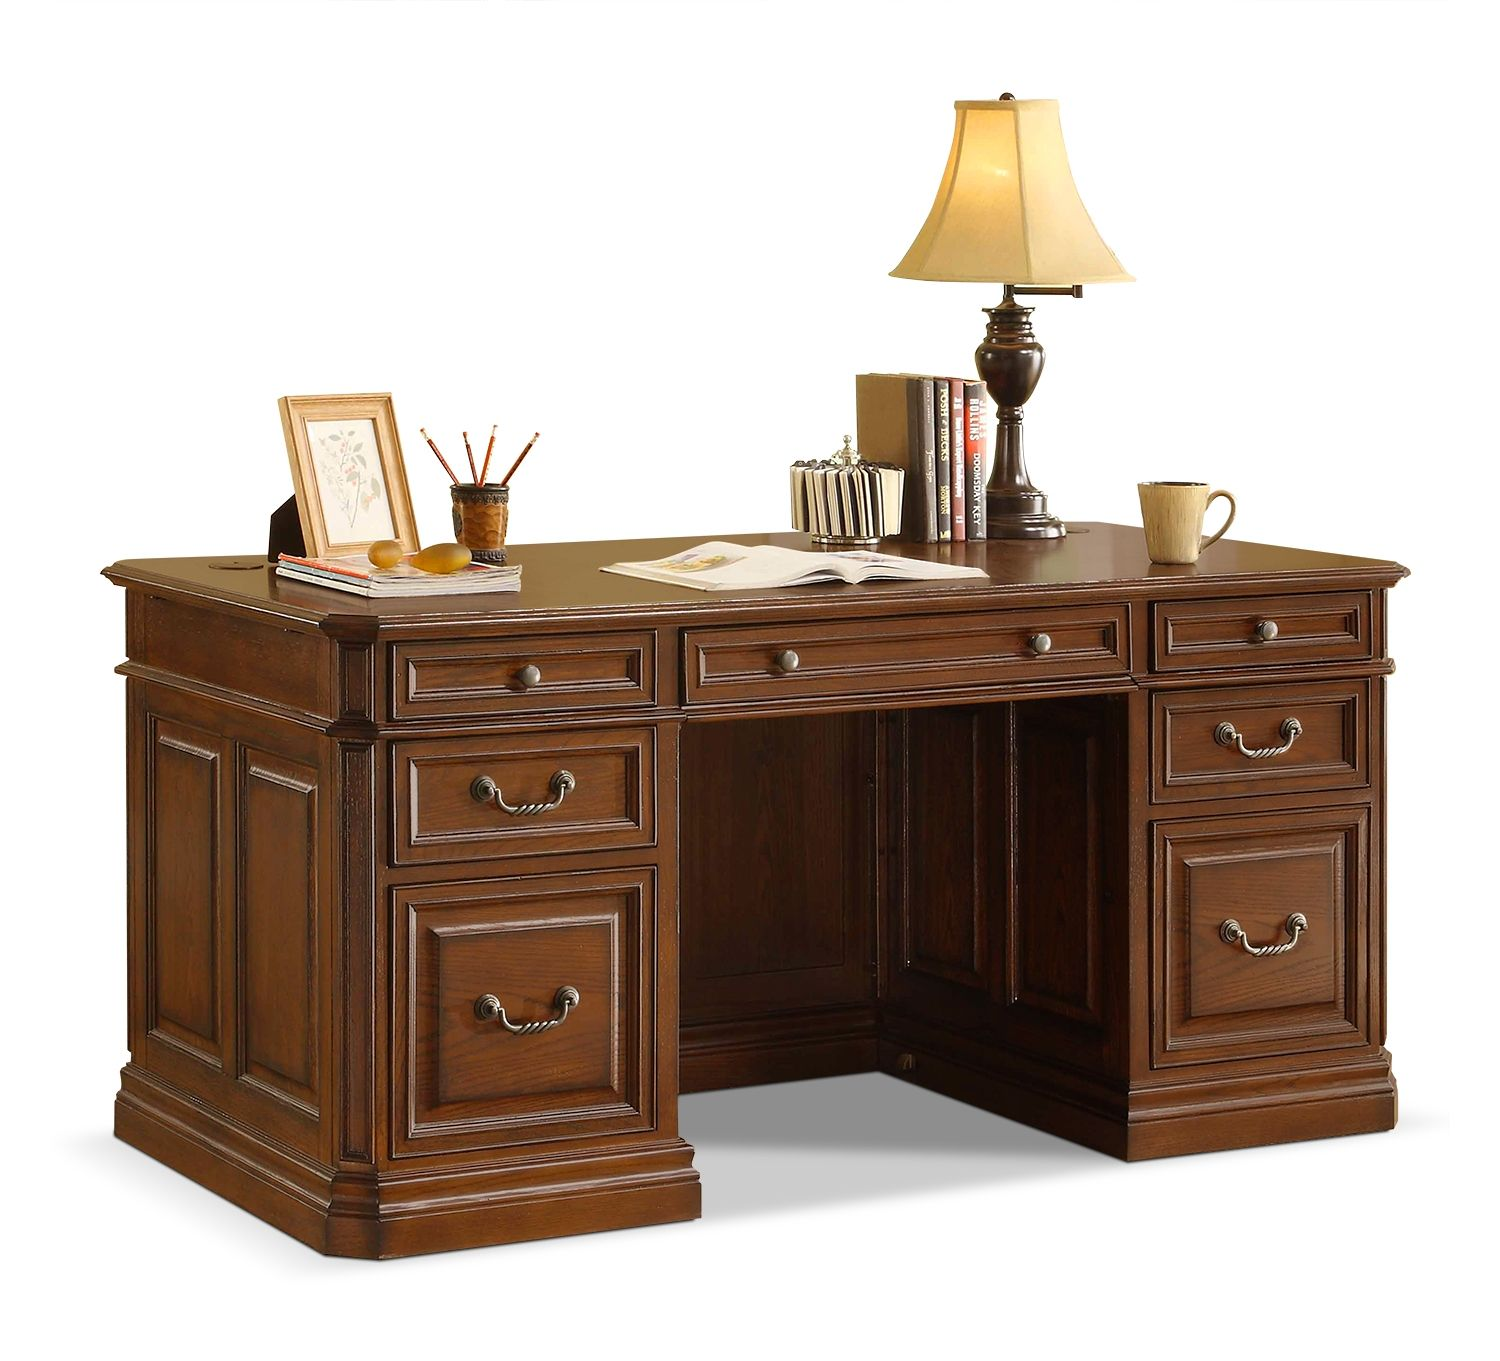 Johanne Home Office Collection - Leon's